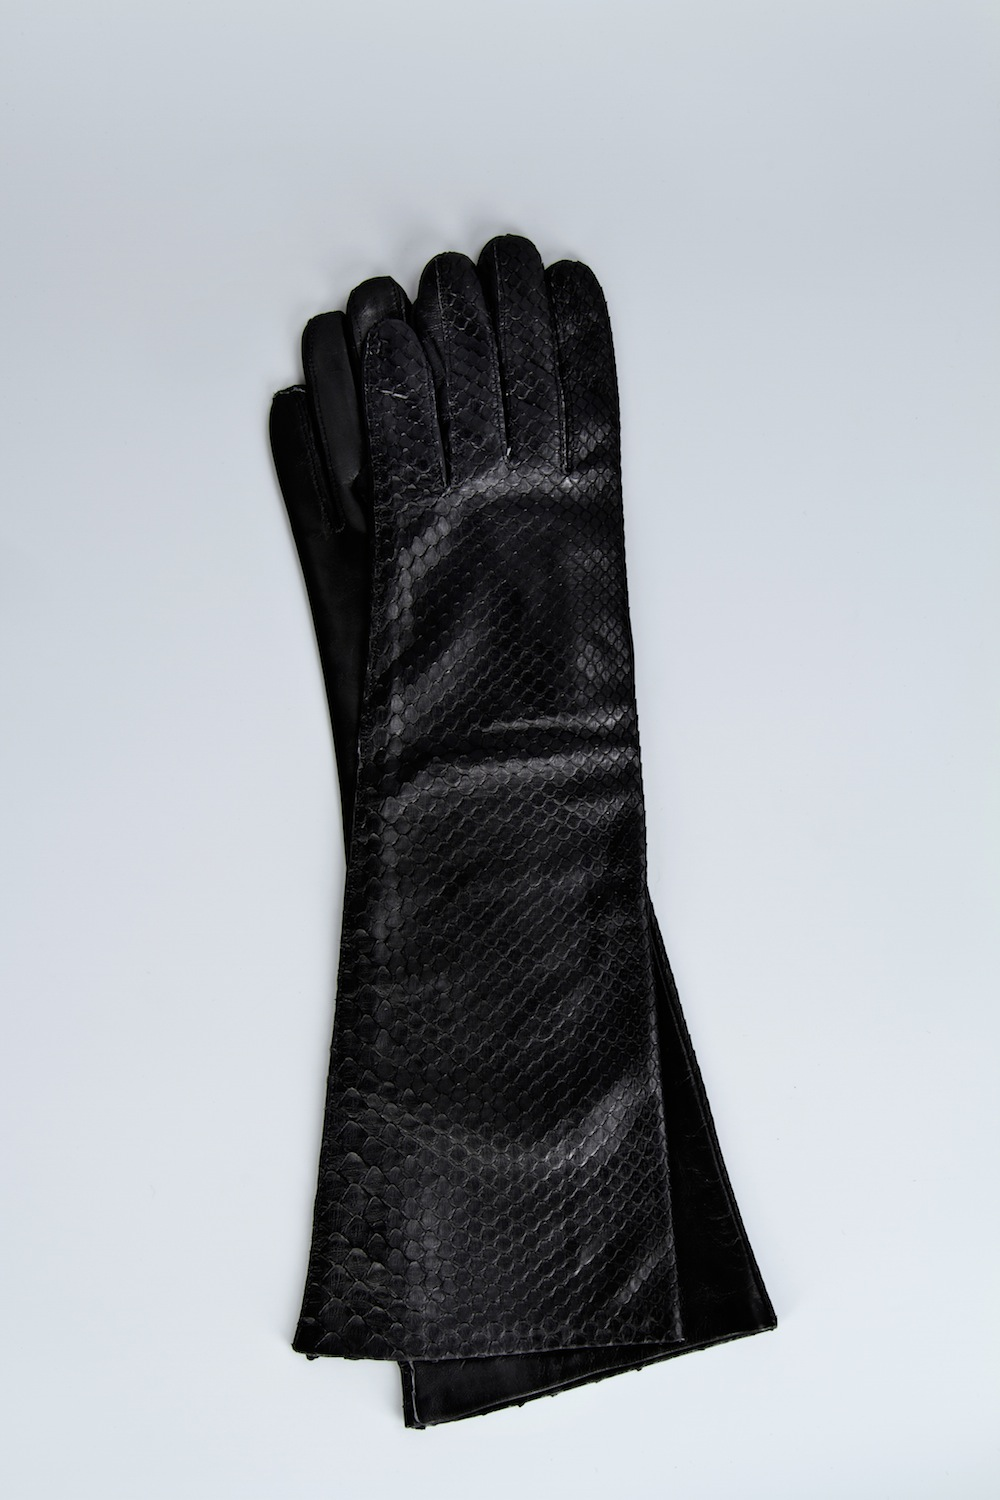 Lambskin and Python Skin Medium Length Glove / Fall-Winter 2013 / Mark Molnar